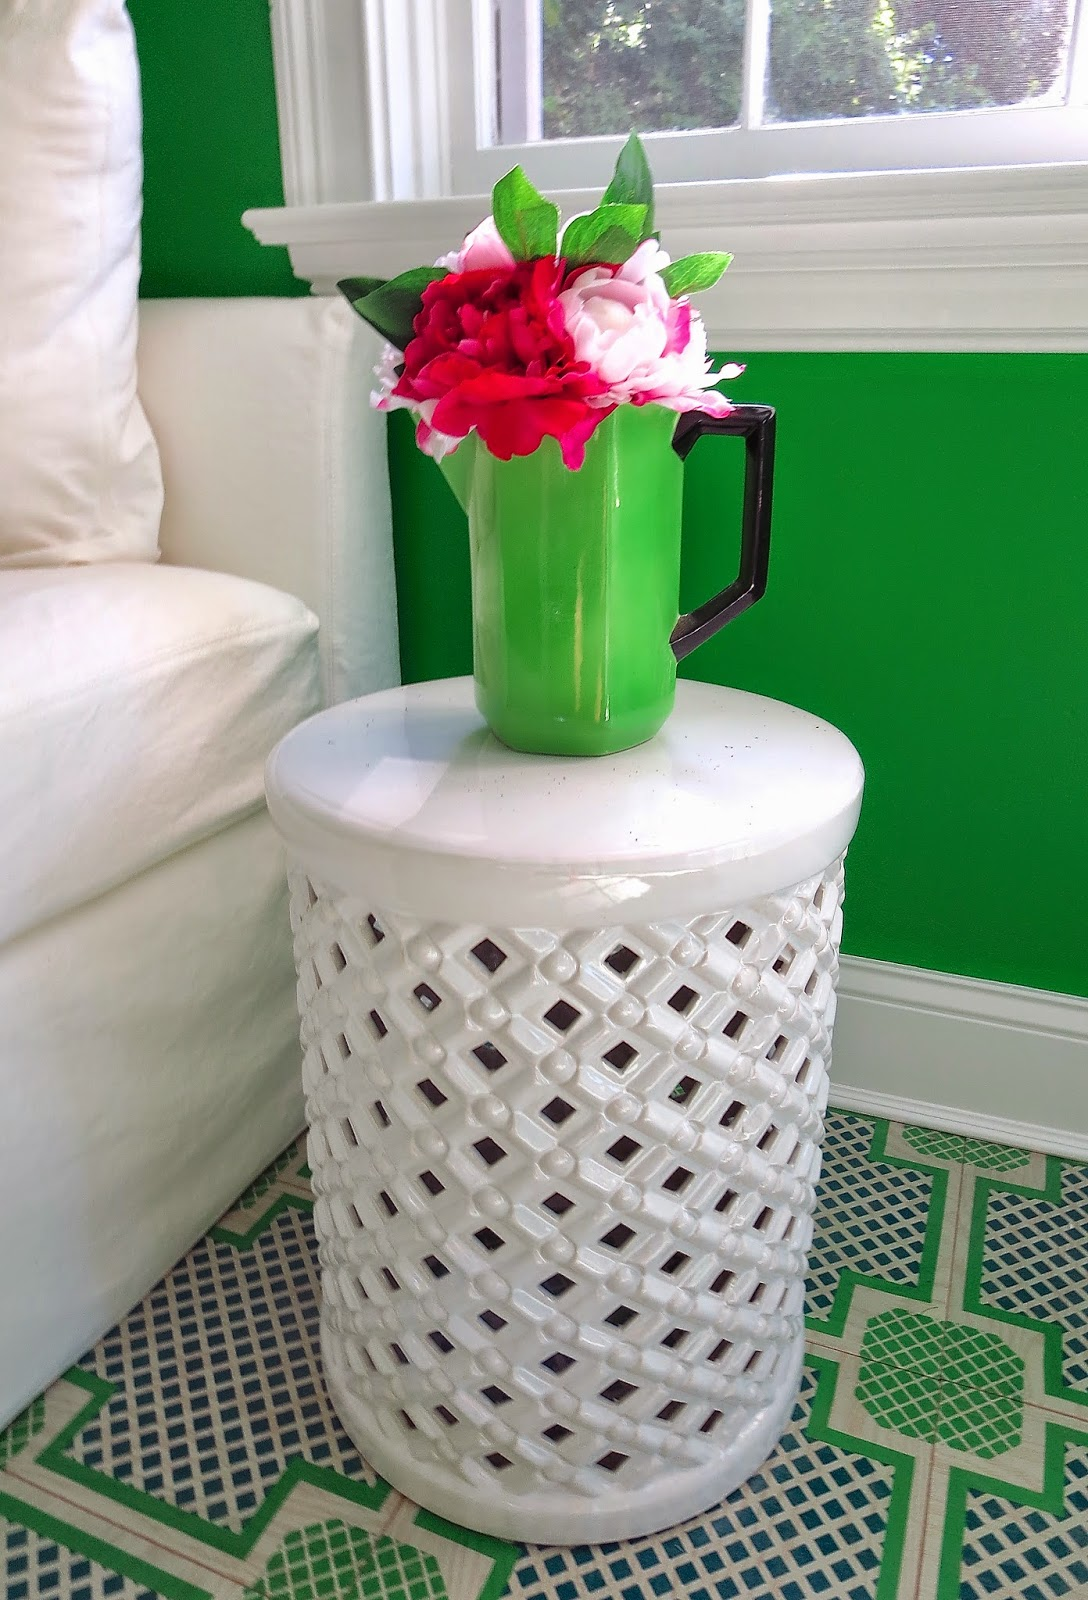 white ceramic porcelain garden stool